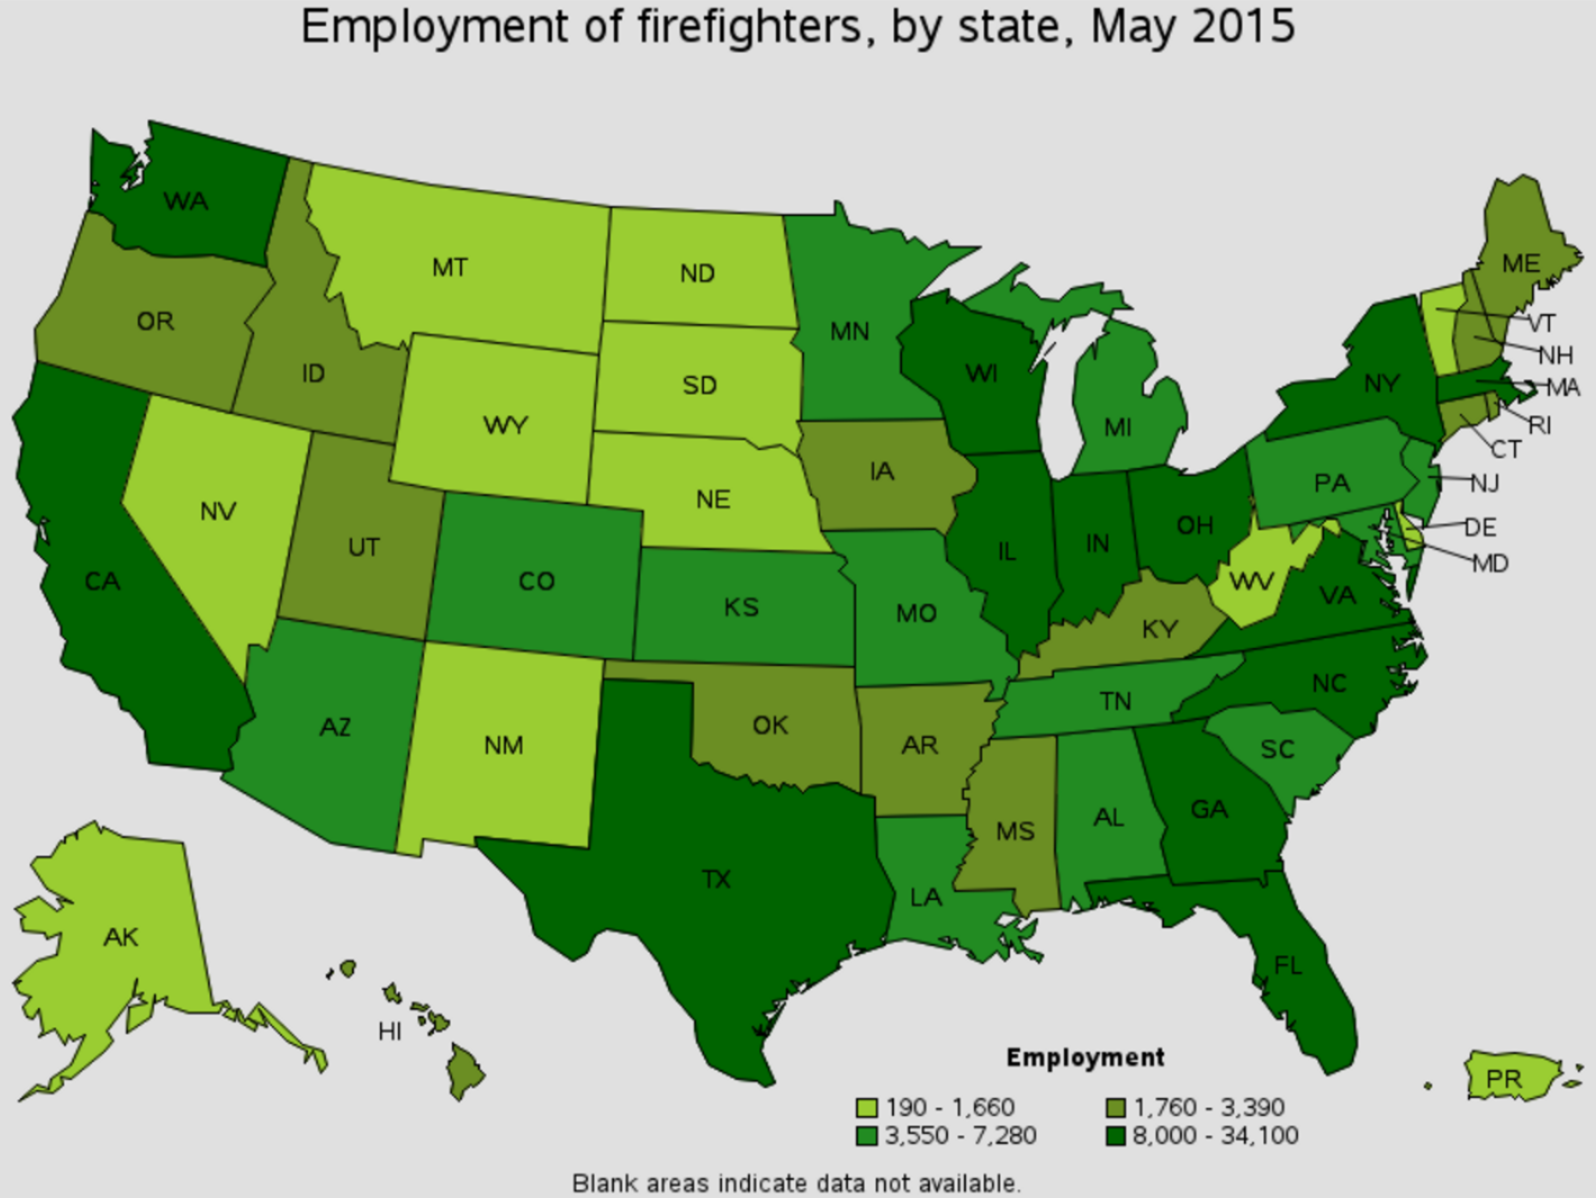 firefighter job outlook by state Anchorage Alaska